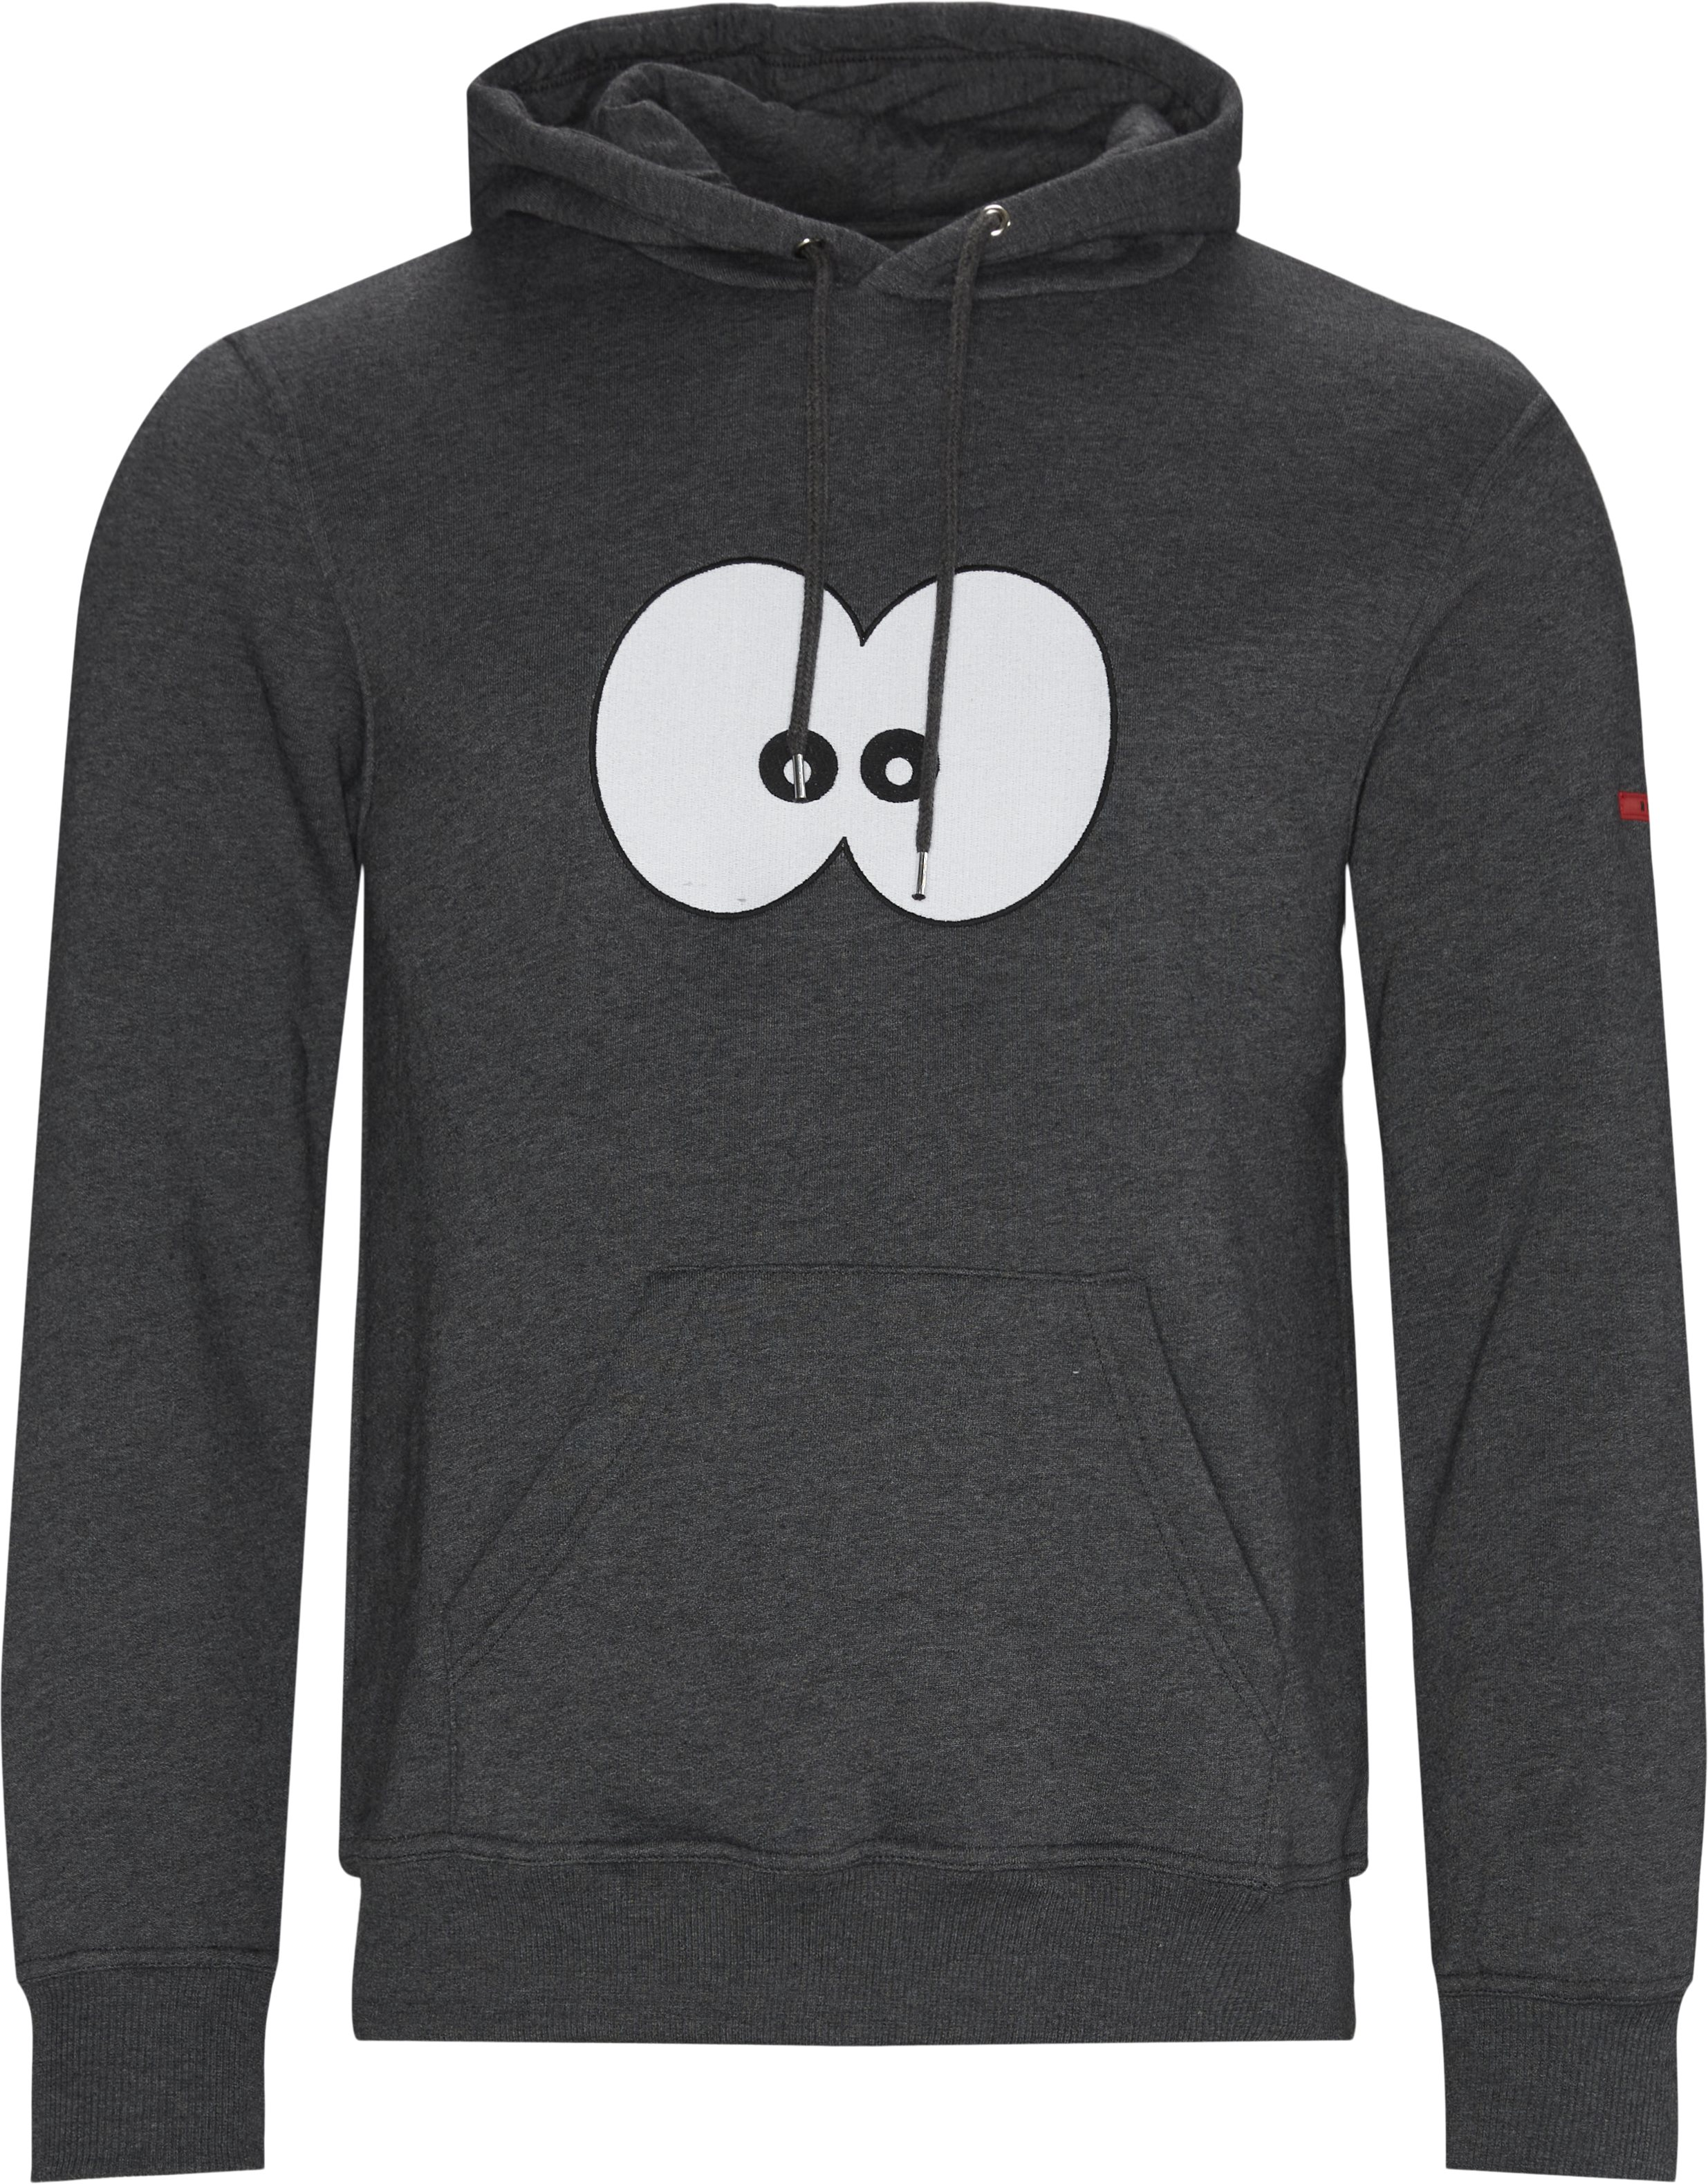 Eyes Hoodie - Sweatshirts - Regular - Grå